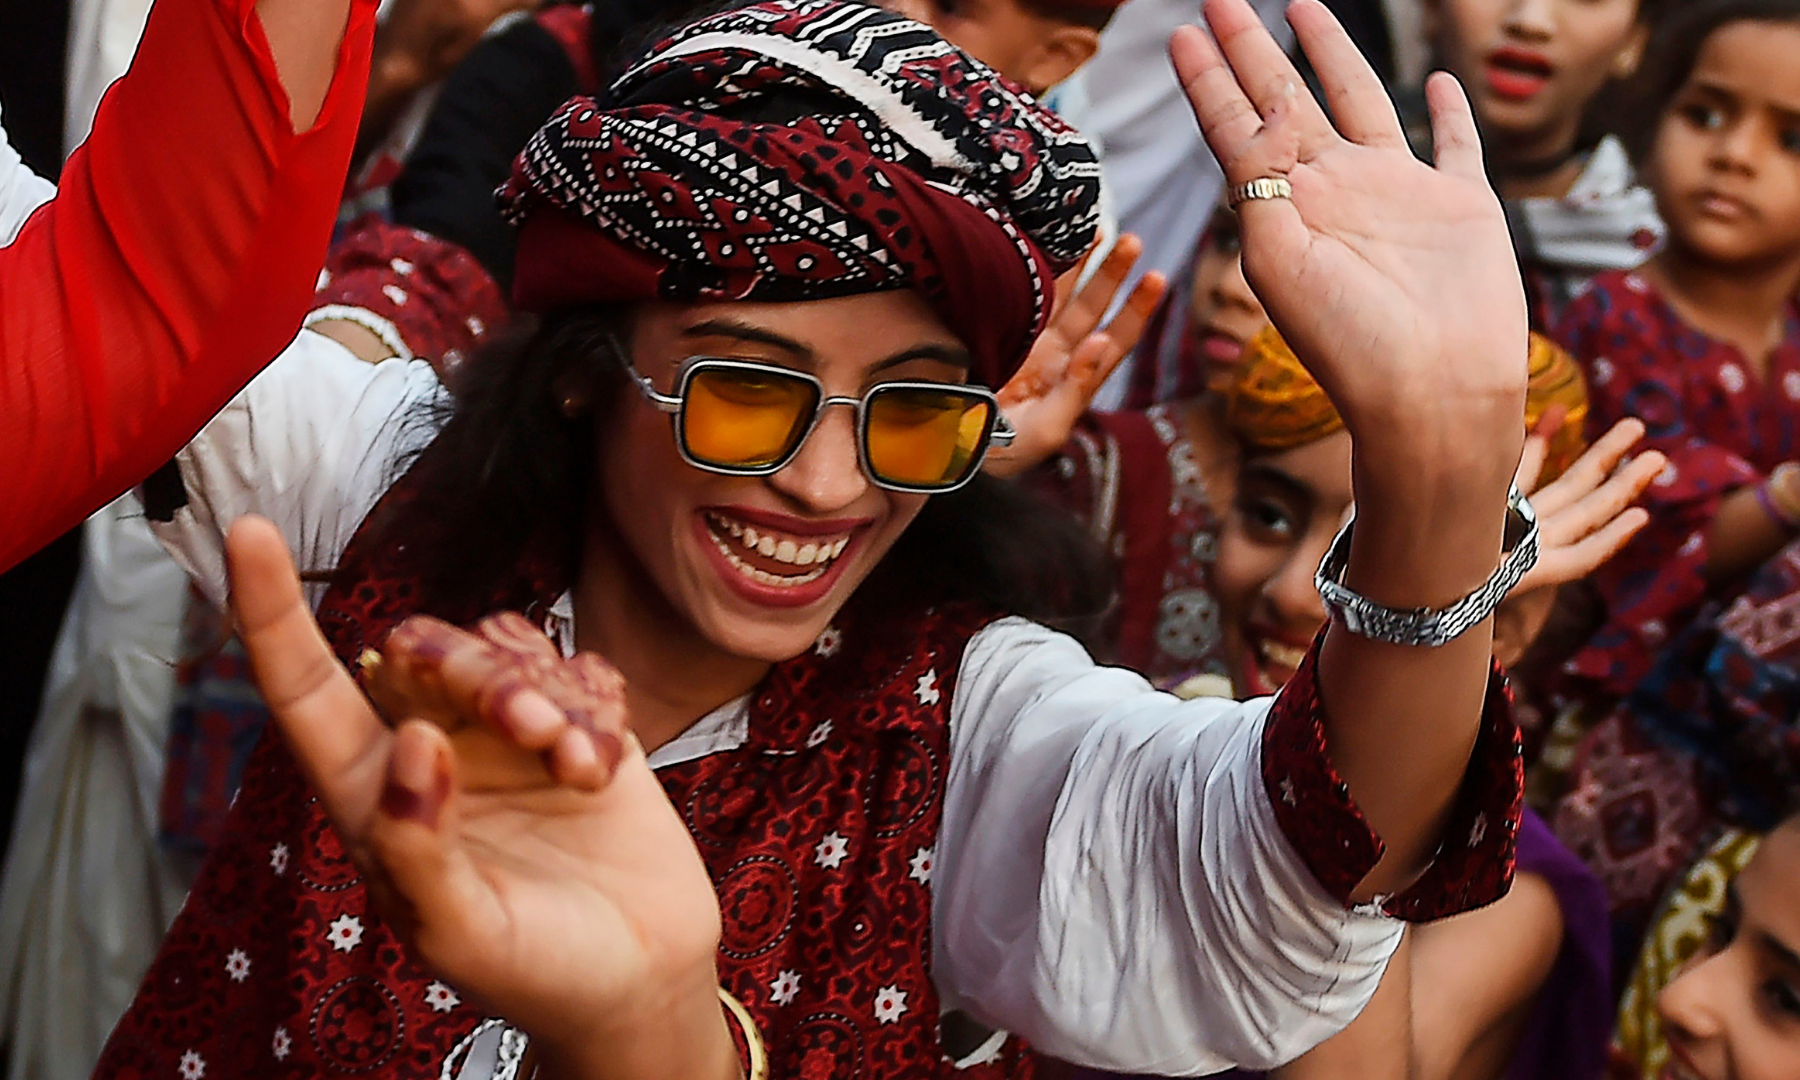 A woman, wearing a traditional dress, dances as she celebrates during the Sindh Culture Day in Pakistan's port city of Karachi on December 6. — AFP